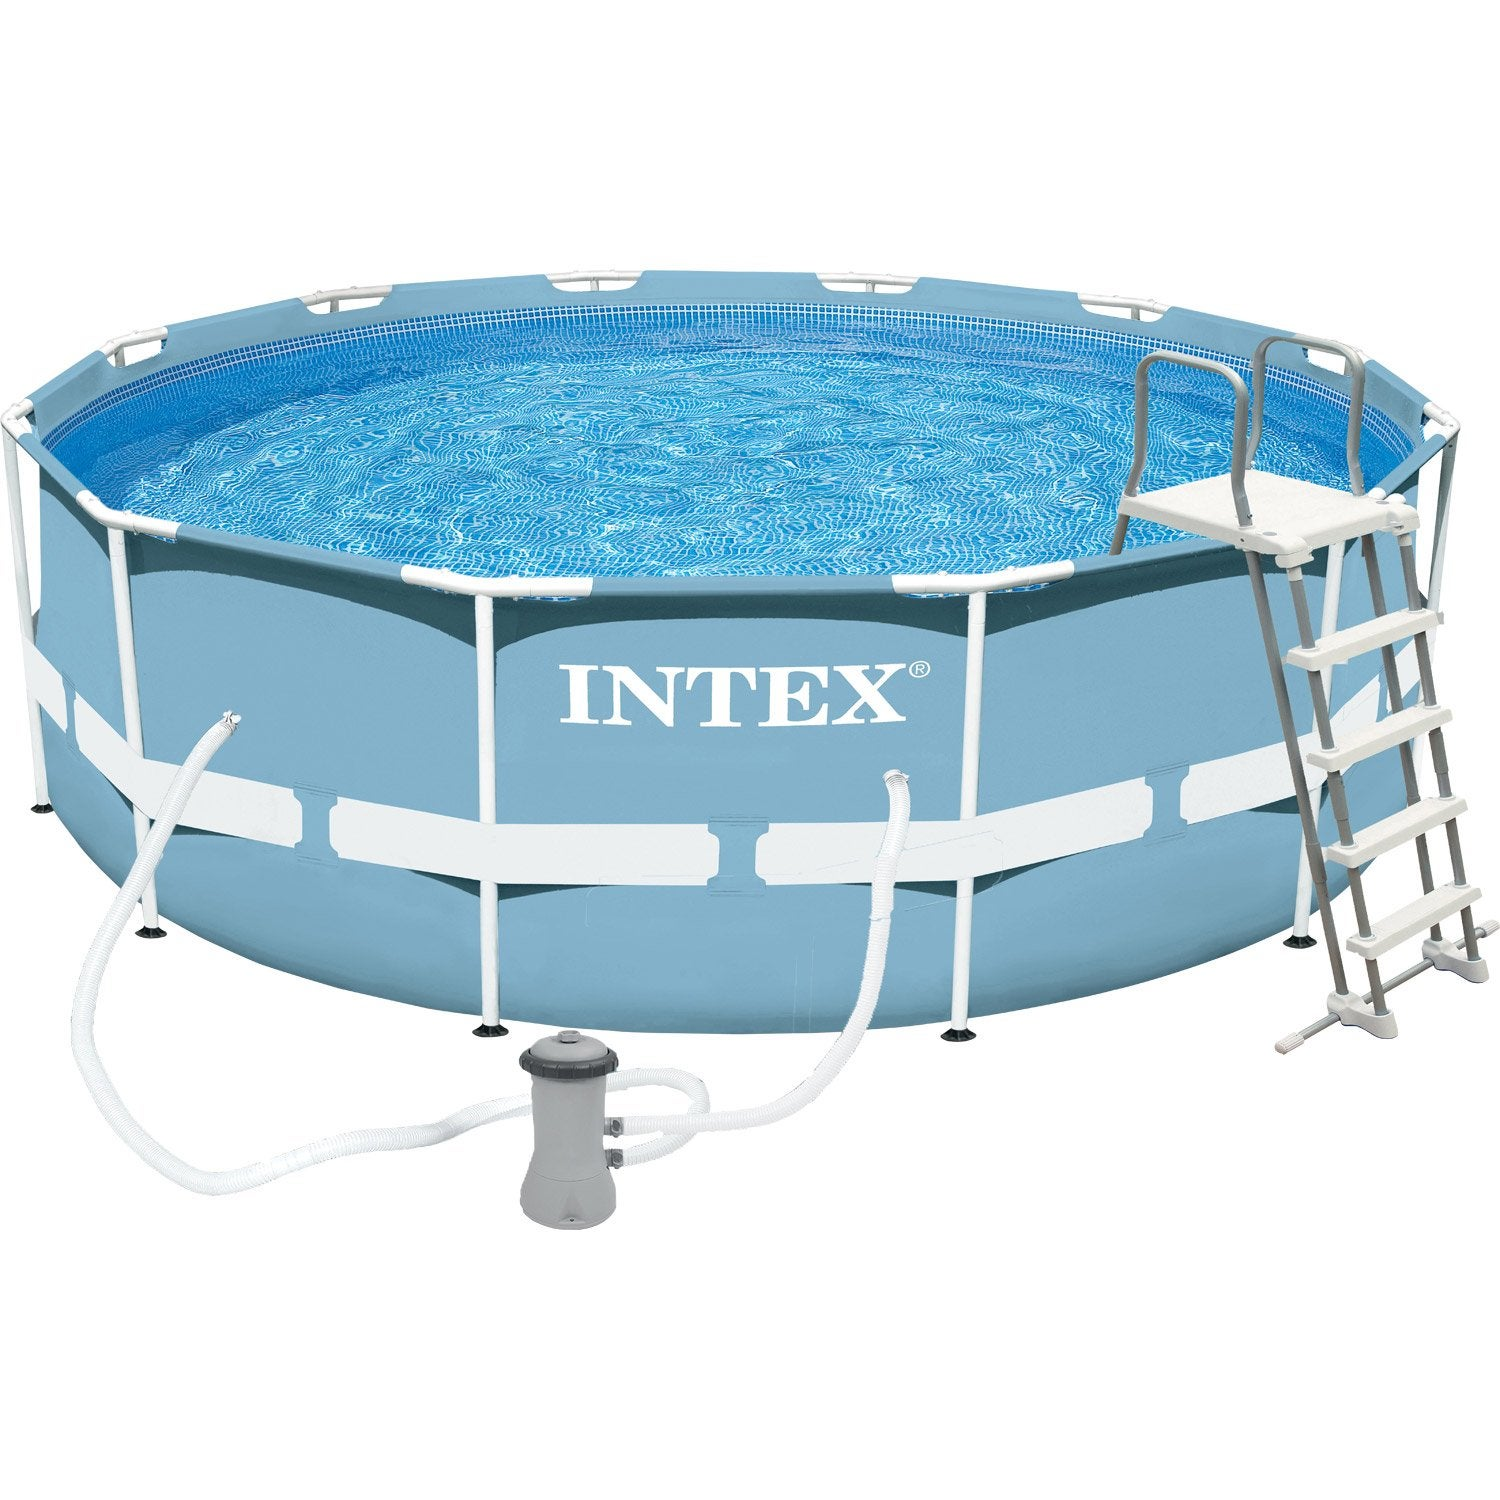 Piscine hors sol autoportante tubulaire prism frame intex for Piscine intex